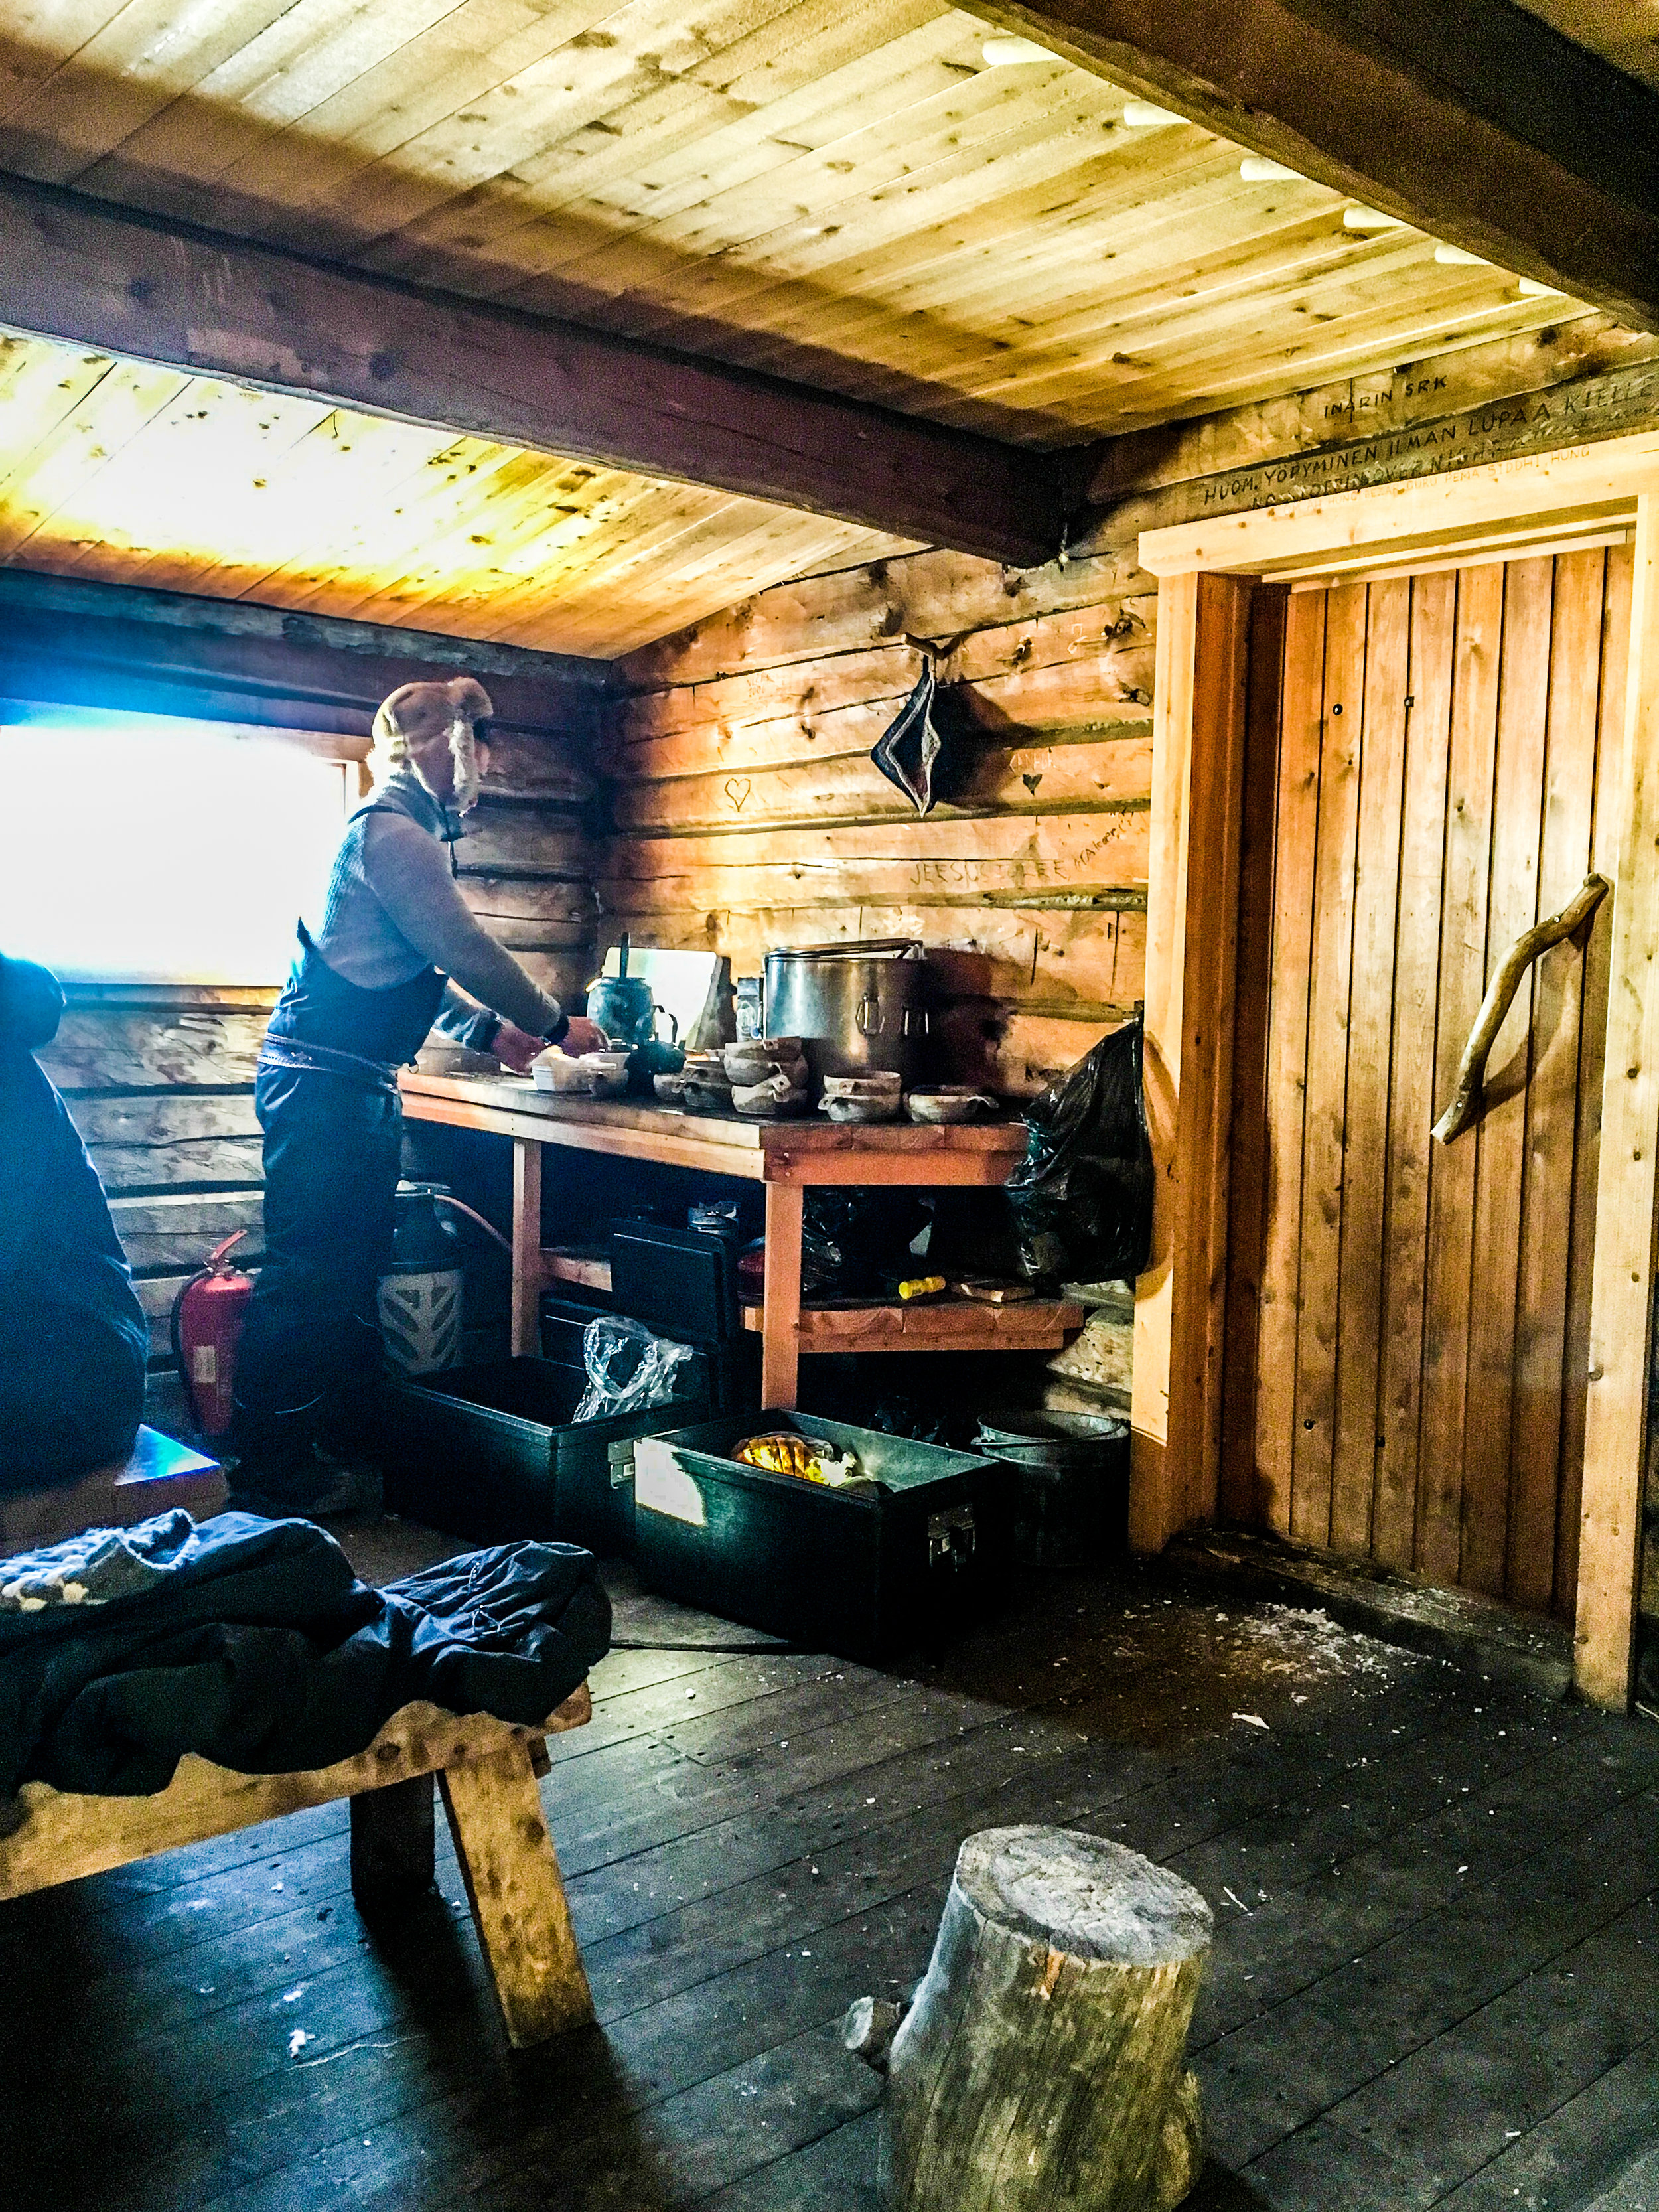 Aurora Village Cabins - Where to stay in Lapland Finland, Ivalo Finland - Things to do in Lapland Finland, Ivalo